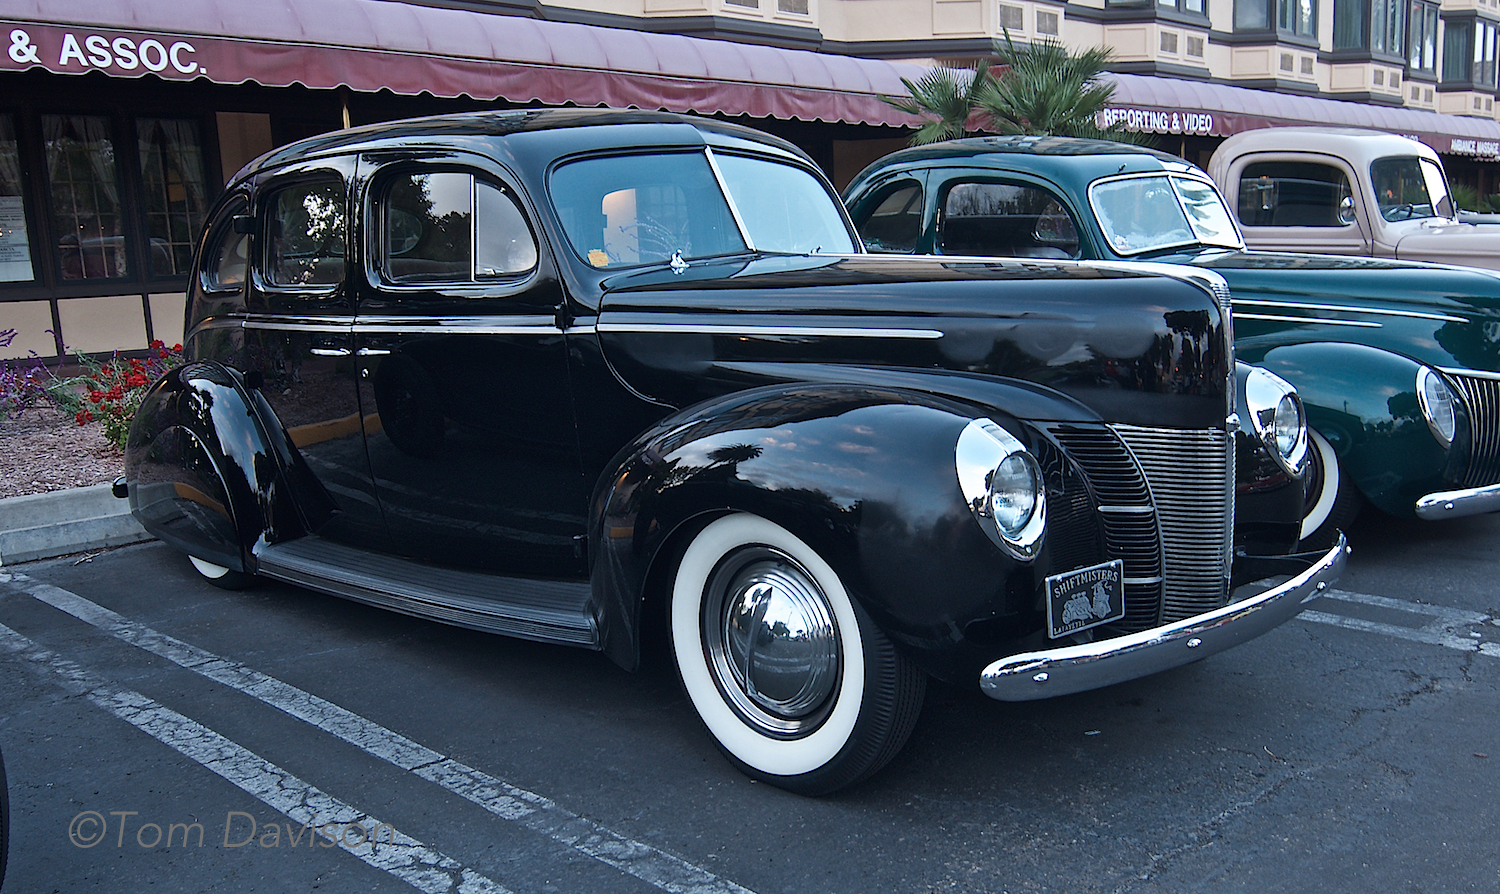 A 1940 Ford (looks like a line-up to me!).